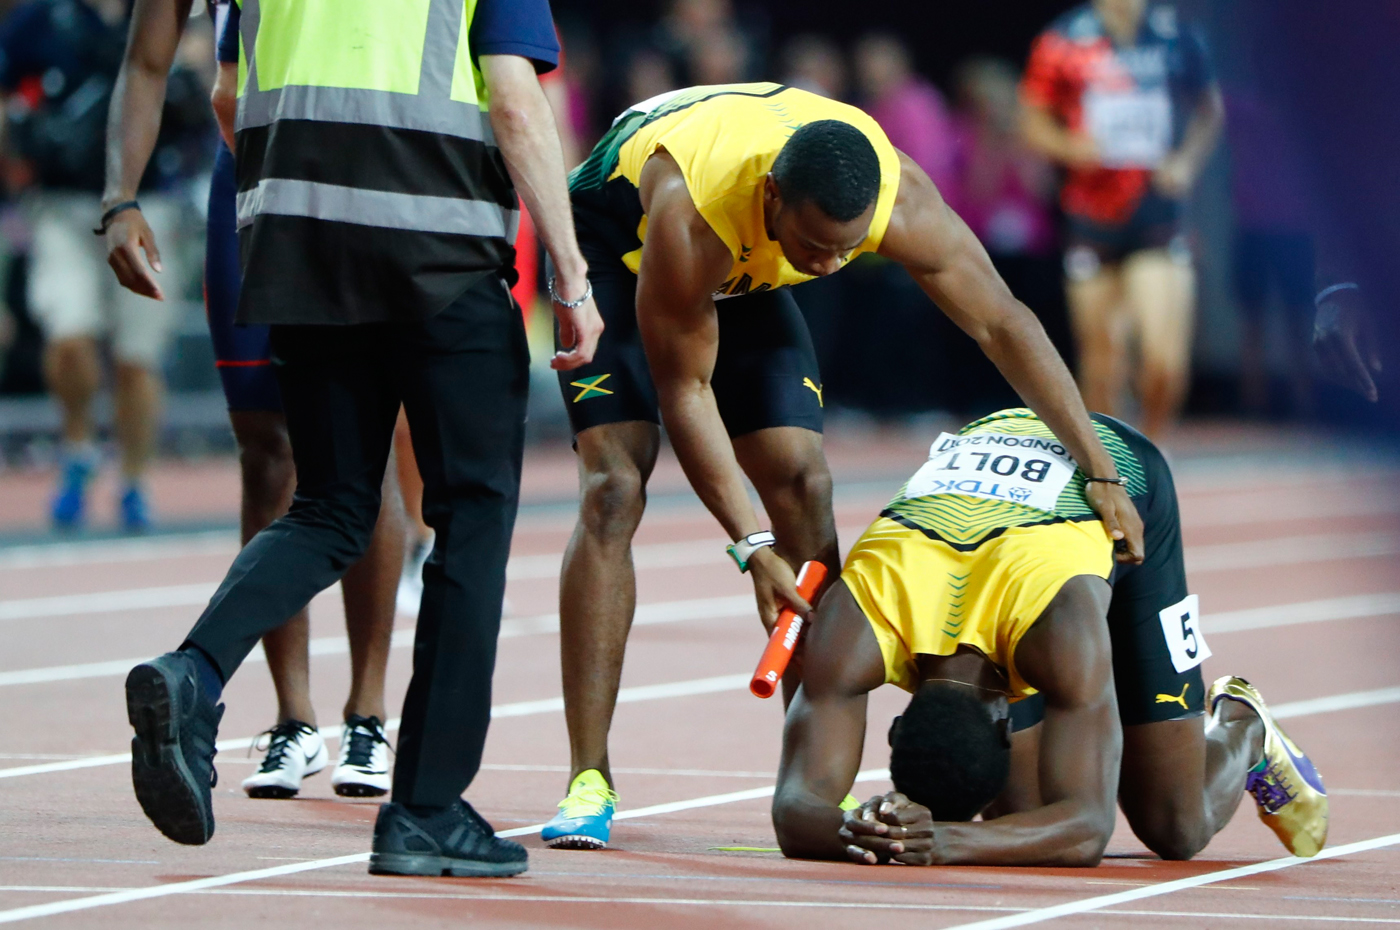 Athletics - World Athletics Championships – men's 4 x 100 meters relay final – London Stadium, London, Britain – August 12, 2017 – Usain Bolt of Jamaica is comforted by his teammate. REUTERS/Lucy Nicholson